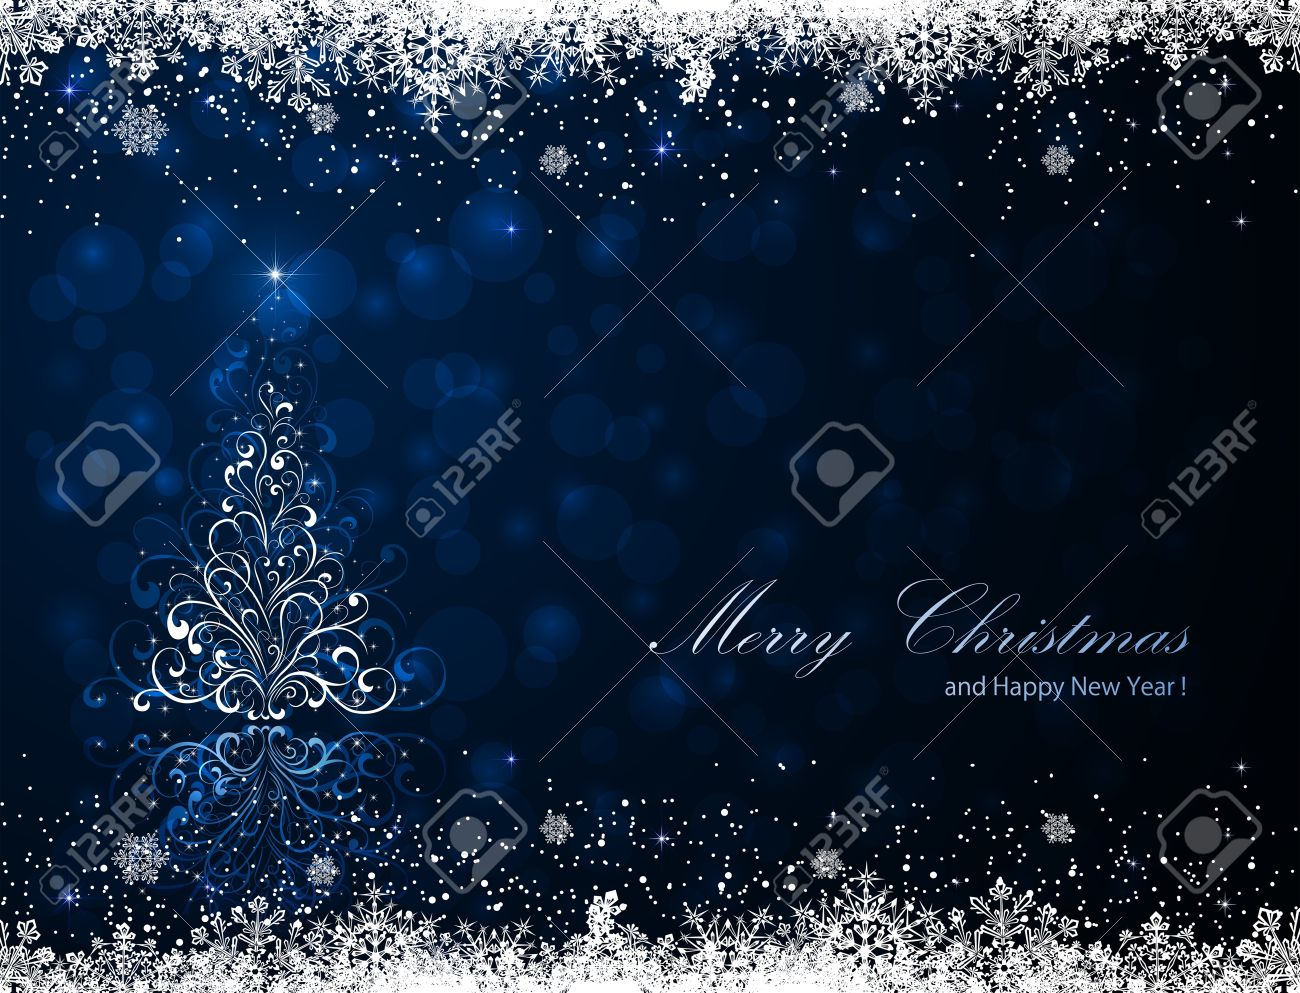 Abstract winter blue background with Christmas tree and snowflakes, illustration. Stock Vector - 16254724